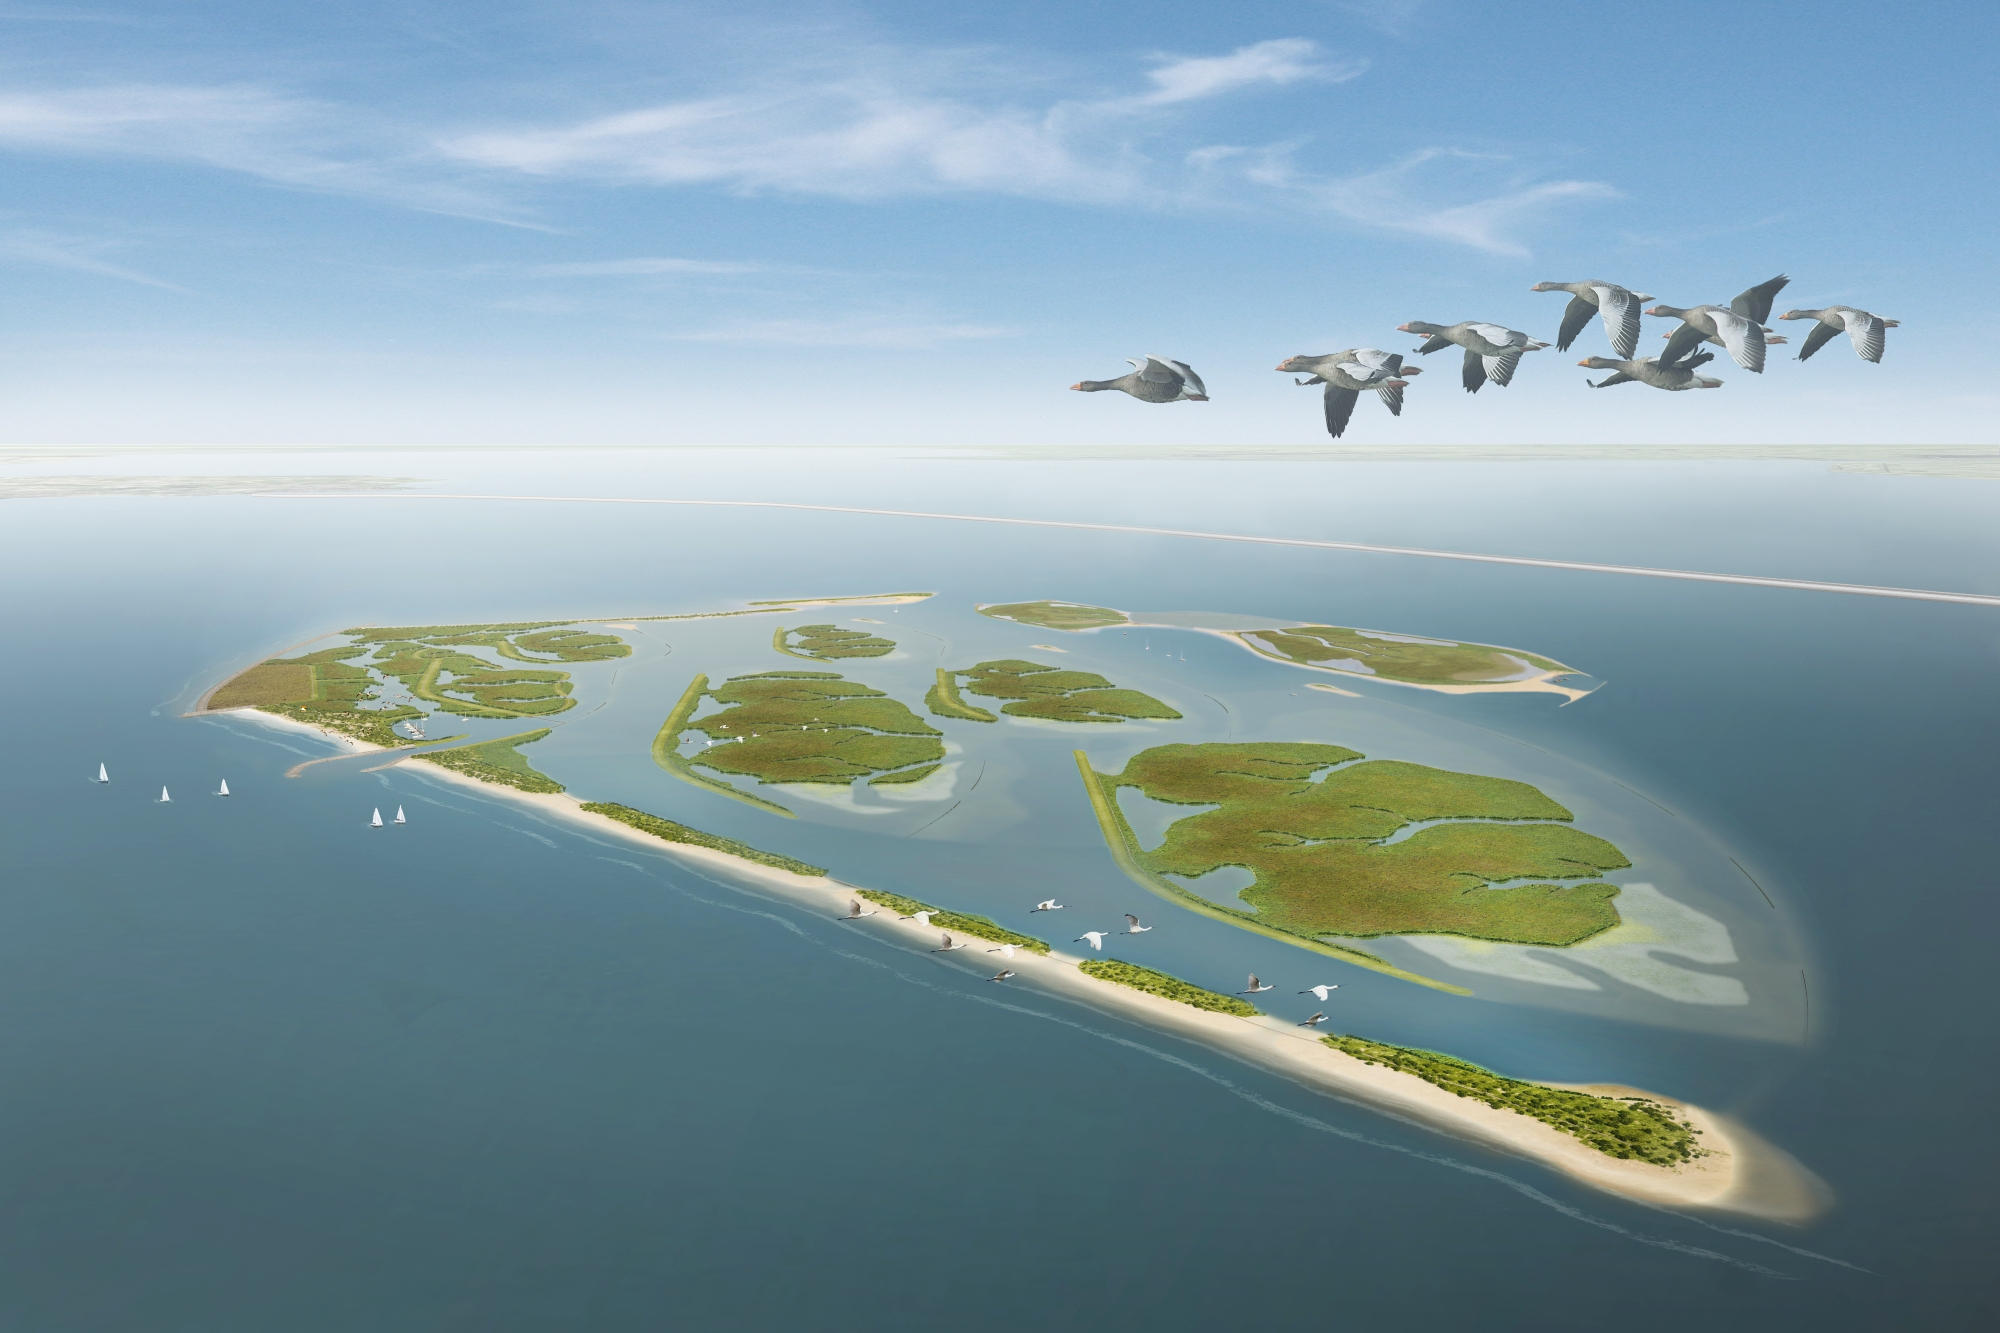 Boskalis to expand Marker Wadden with two new nature islands